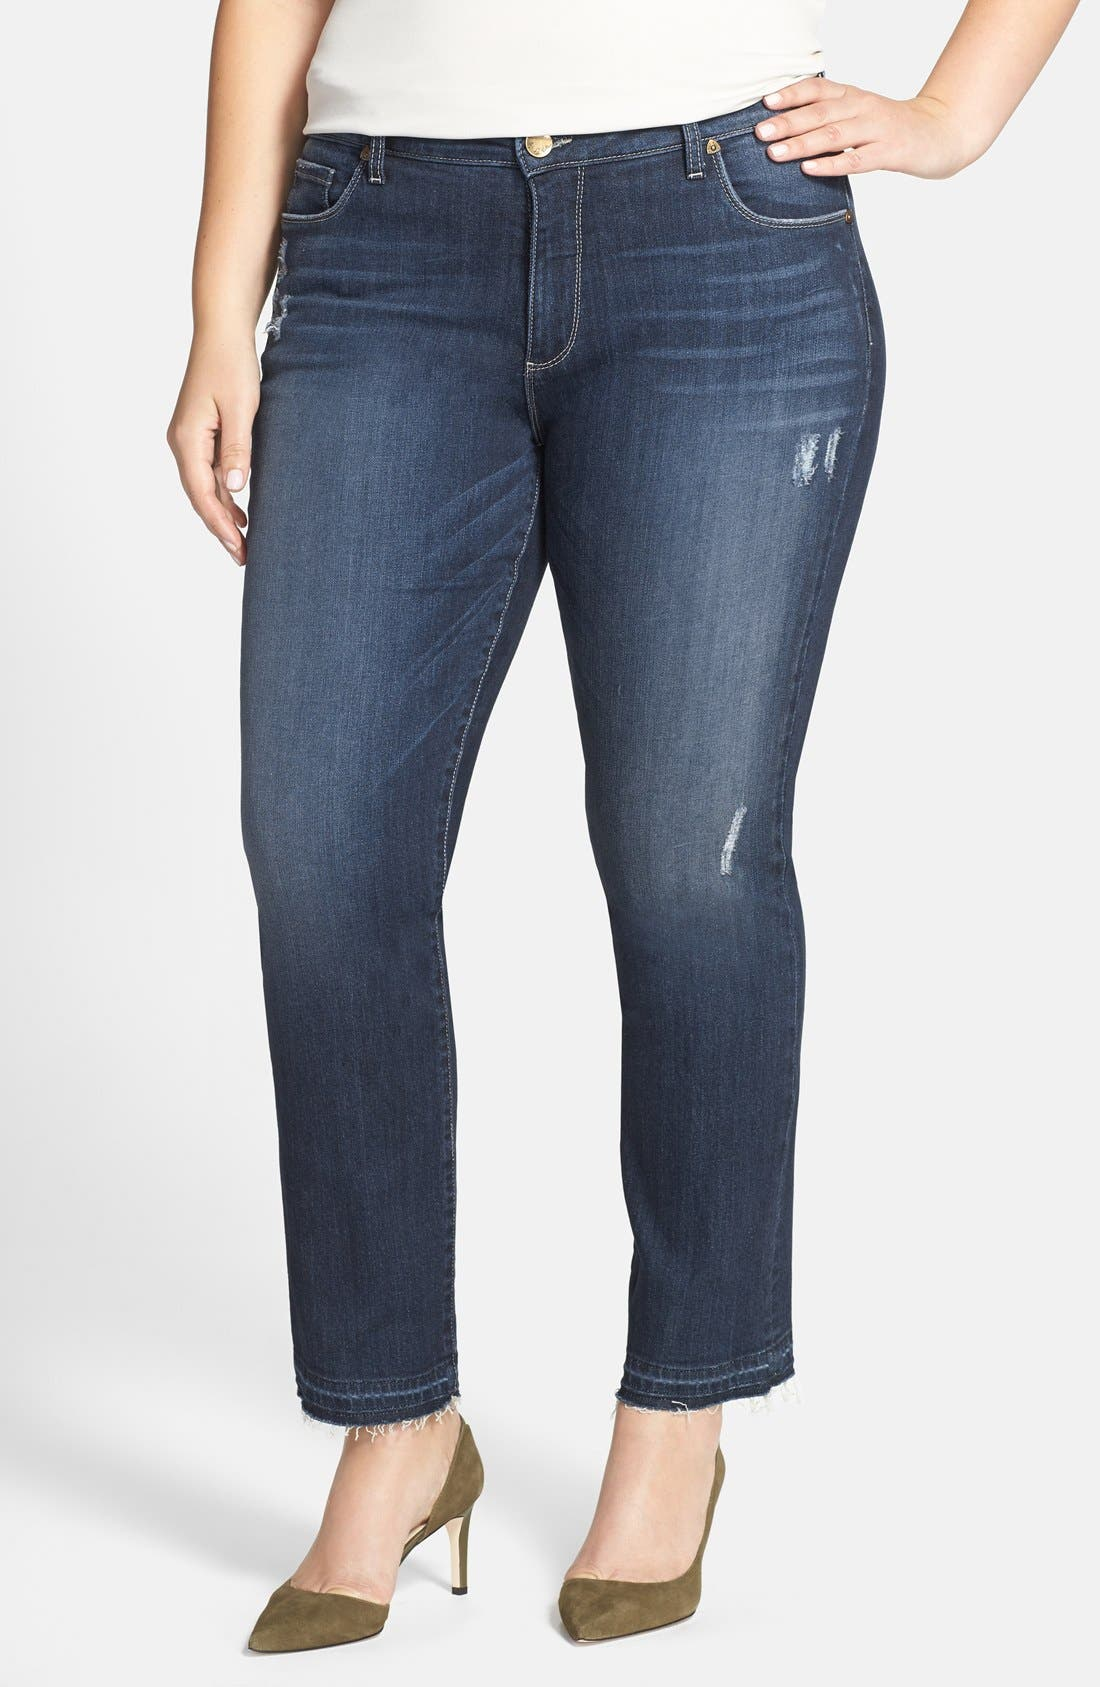 Main Image - KUT from the Kloth 'Reese' Released Hem Distressed Stretch Ankle Jeans (Hard) (Plus Size)